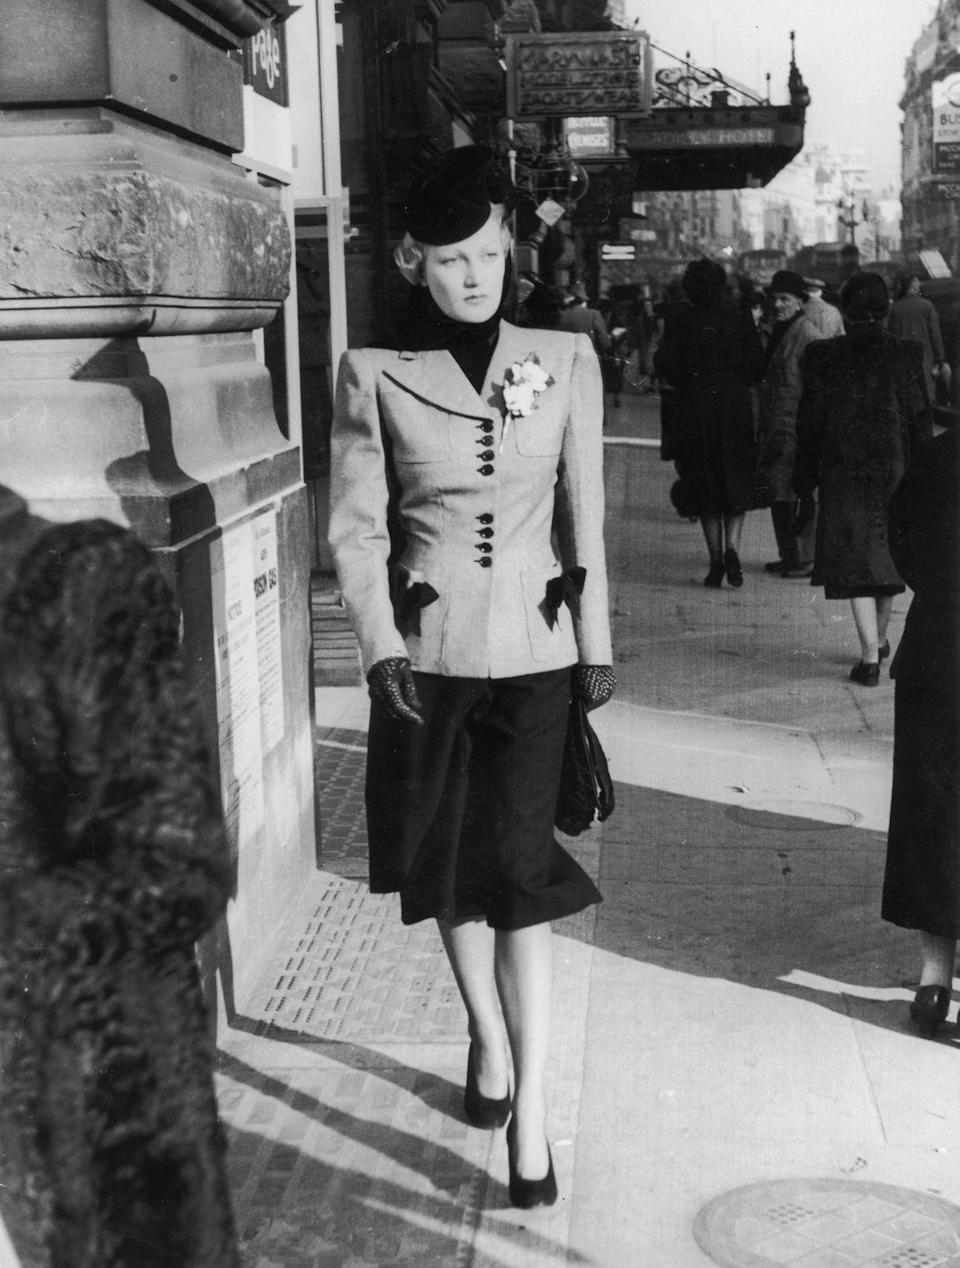 <p>A smartly dressed woman walks down a London street. Her tailored suit has squared shoulders, and the contrasting buttons and trim on her jacket match the just-below-the-knee skirt. </p>